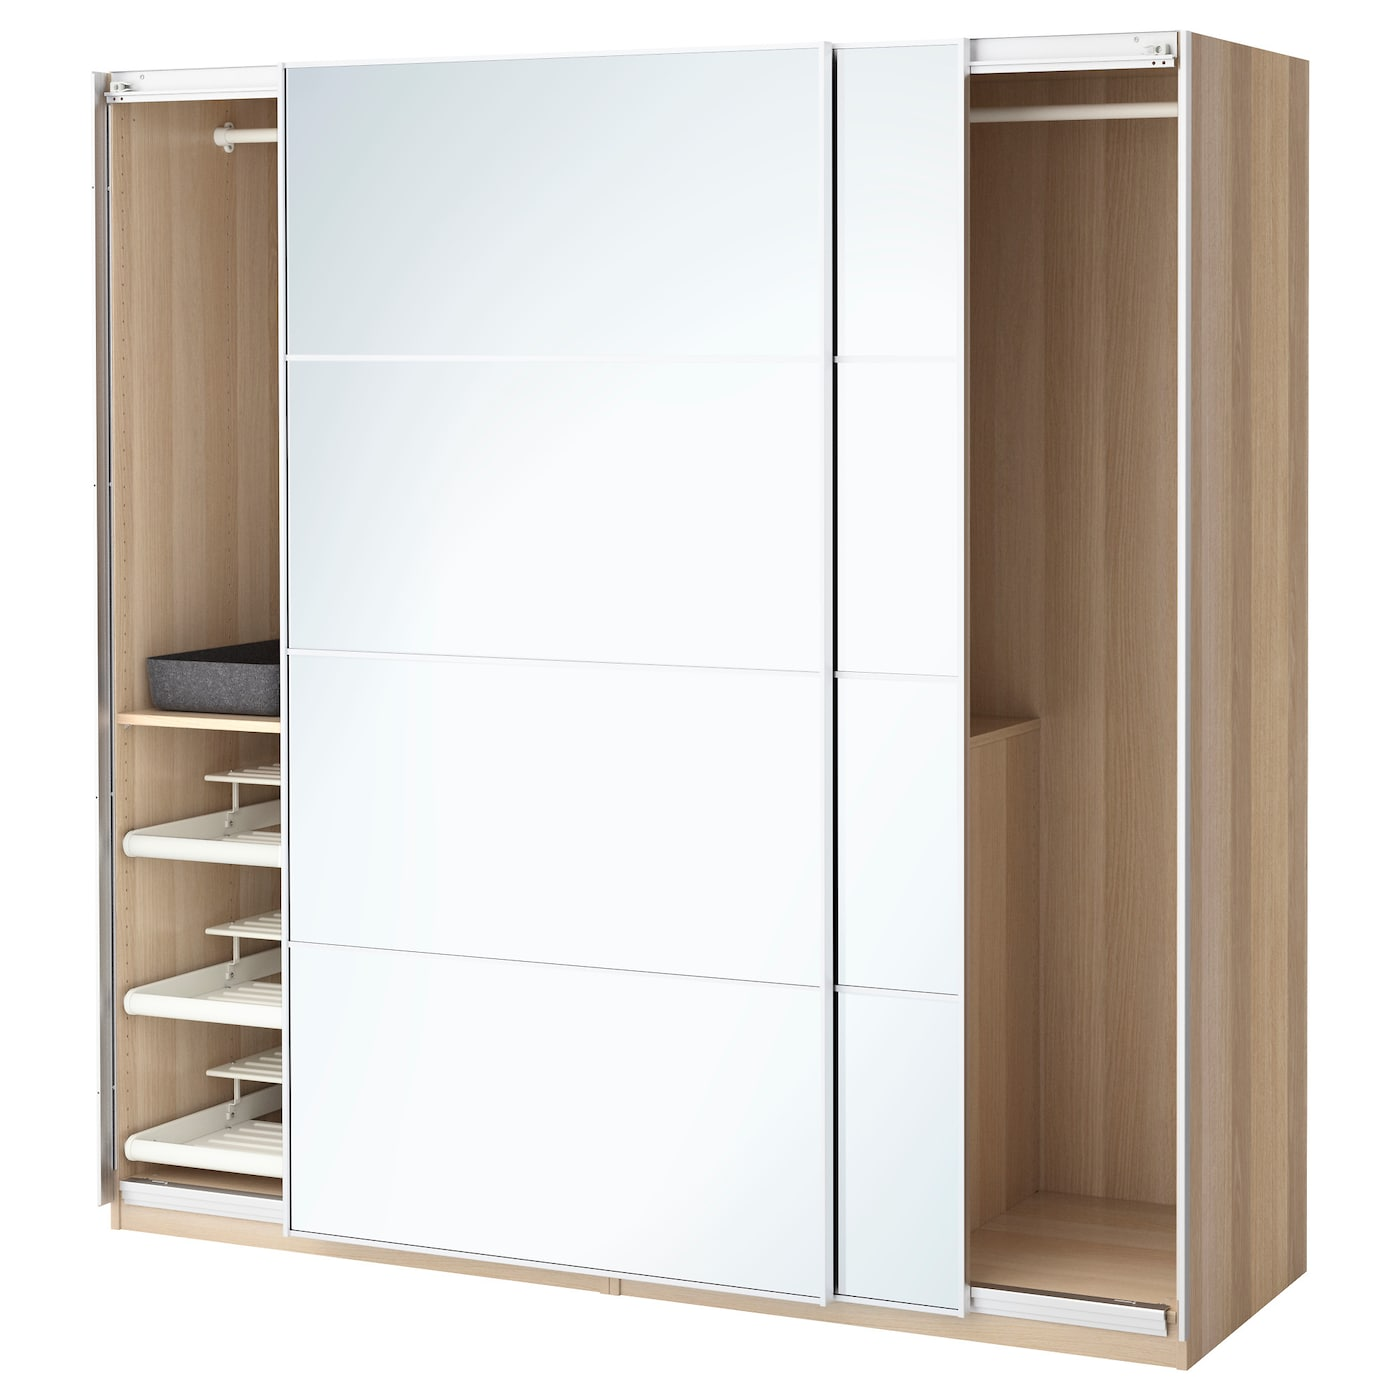 pax wardrobe white stained oak effect auli mirror glass. Black Bedroom Furniture Sets. Home Design Ideas